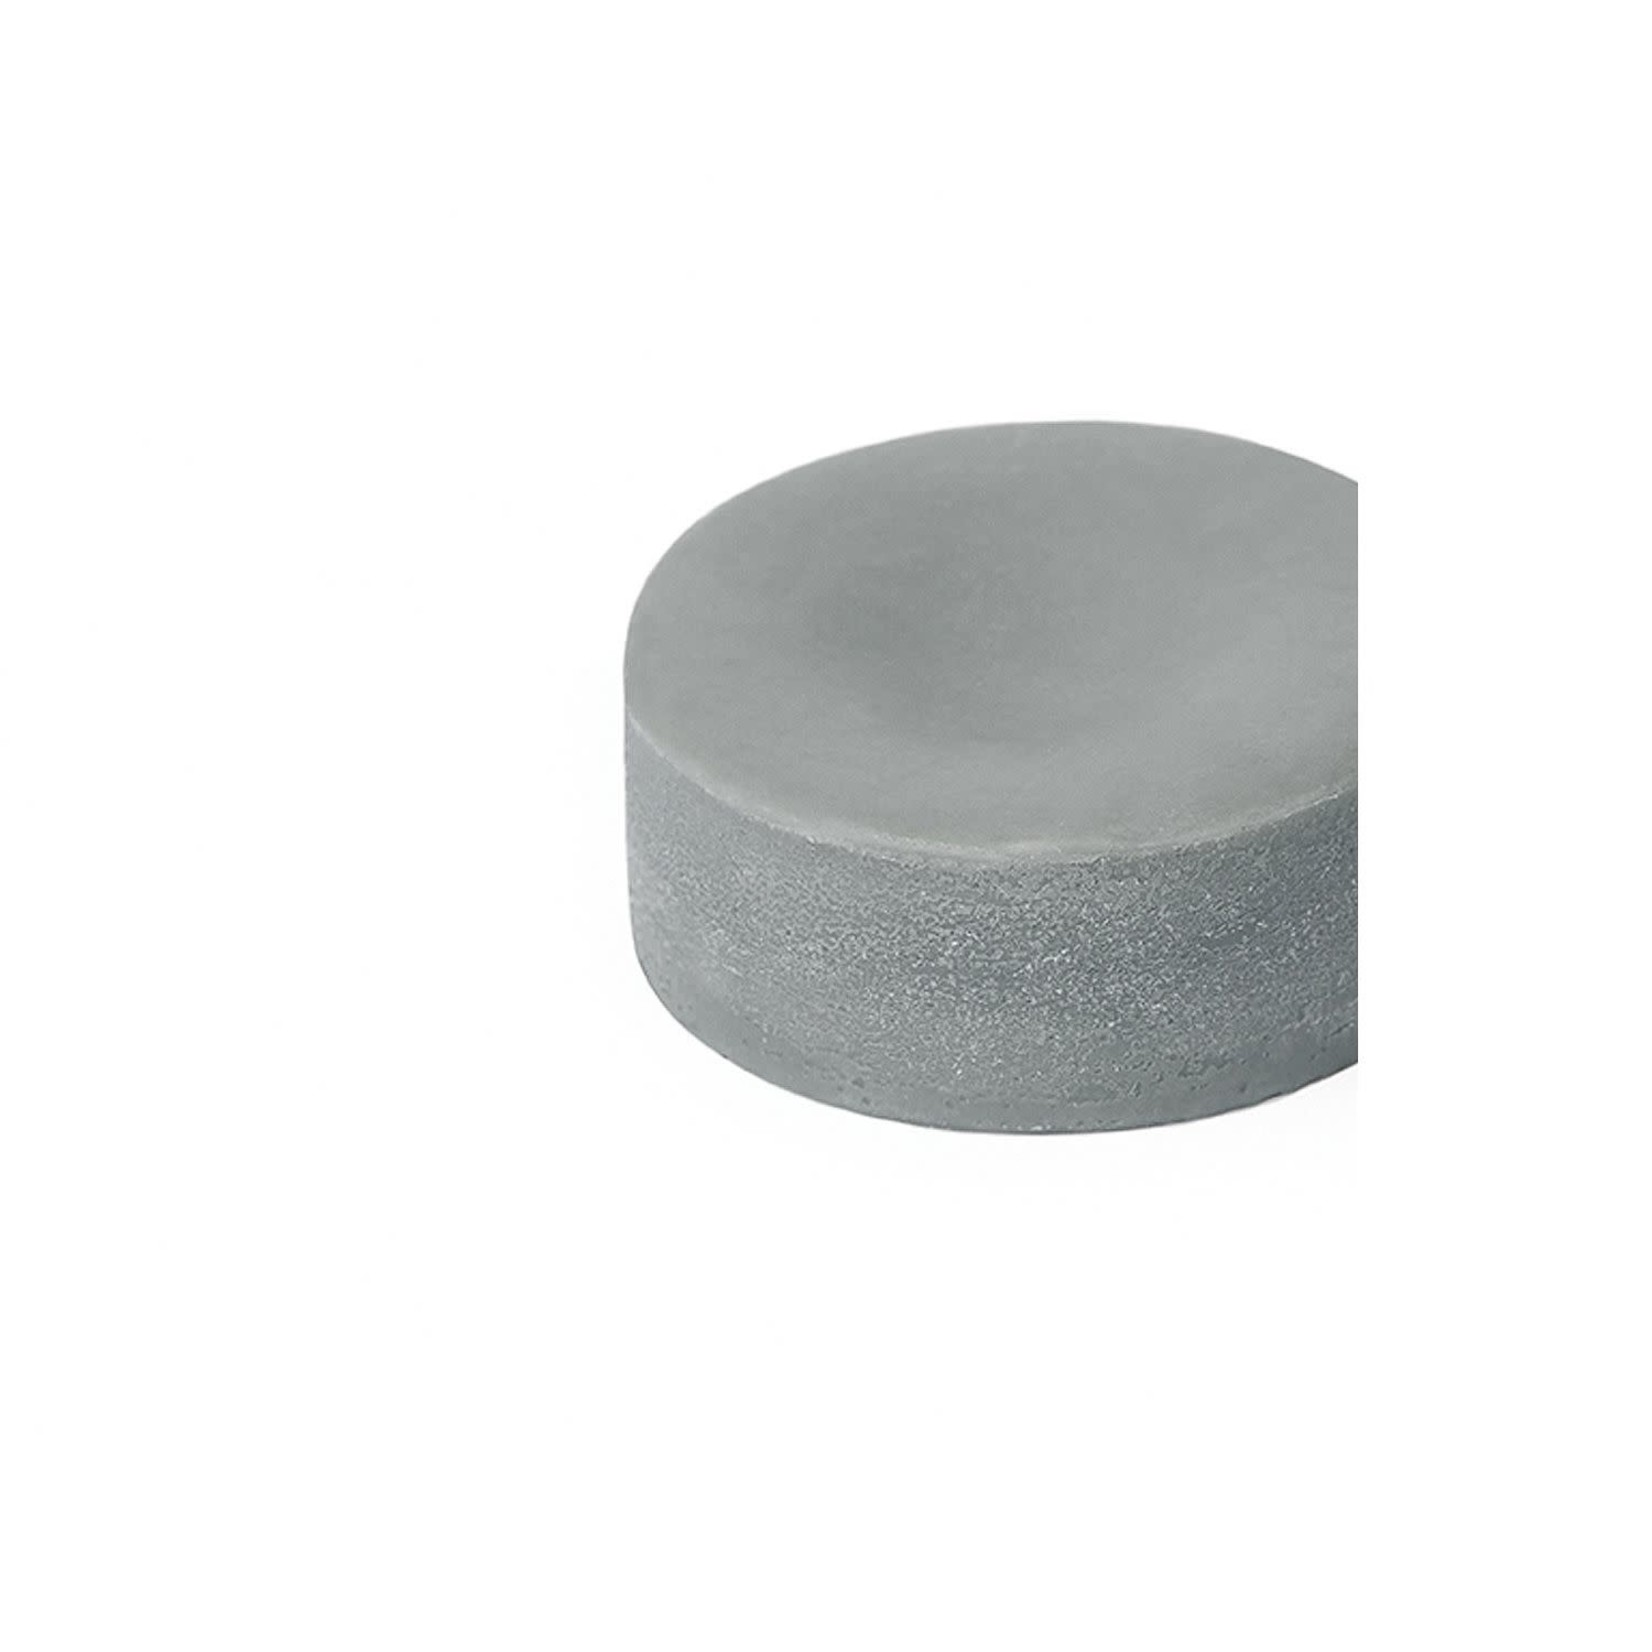 UNWRAPPED LIFE THE DETOXIFIER CONDITIONER BAR